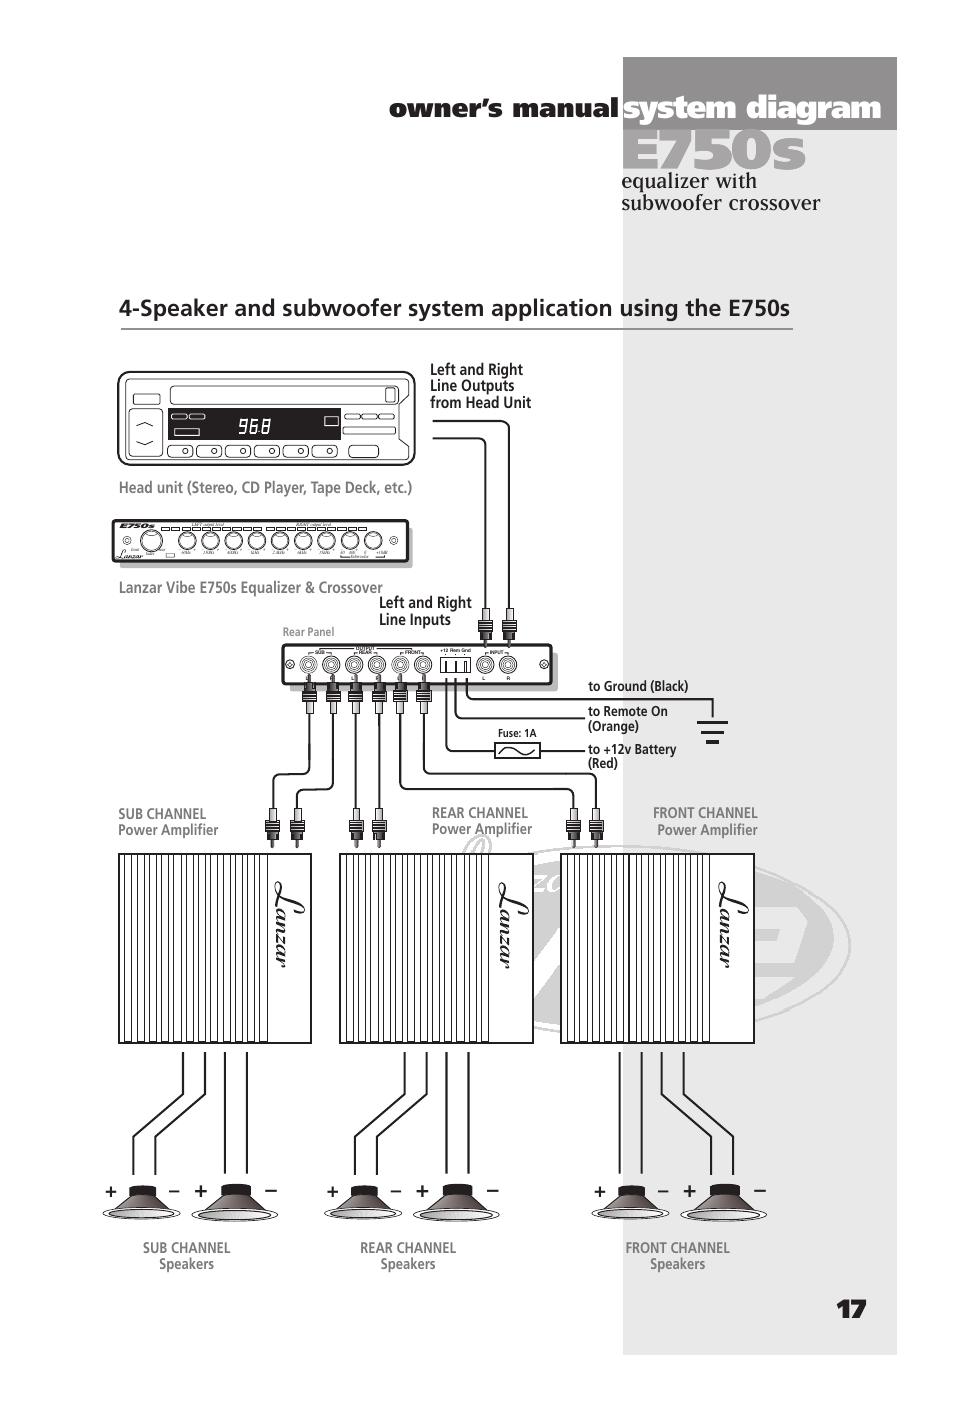 system diagram owner s manual 17 equalizer with subwoofer rh manualsdir com Lanzar Audio Lanzar Audio